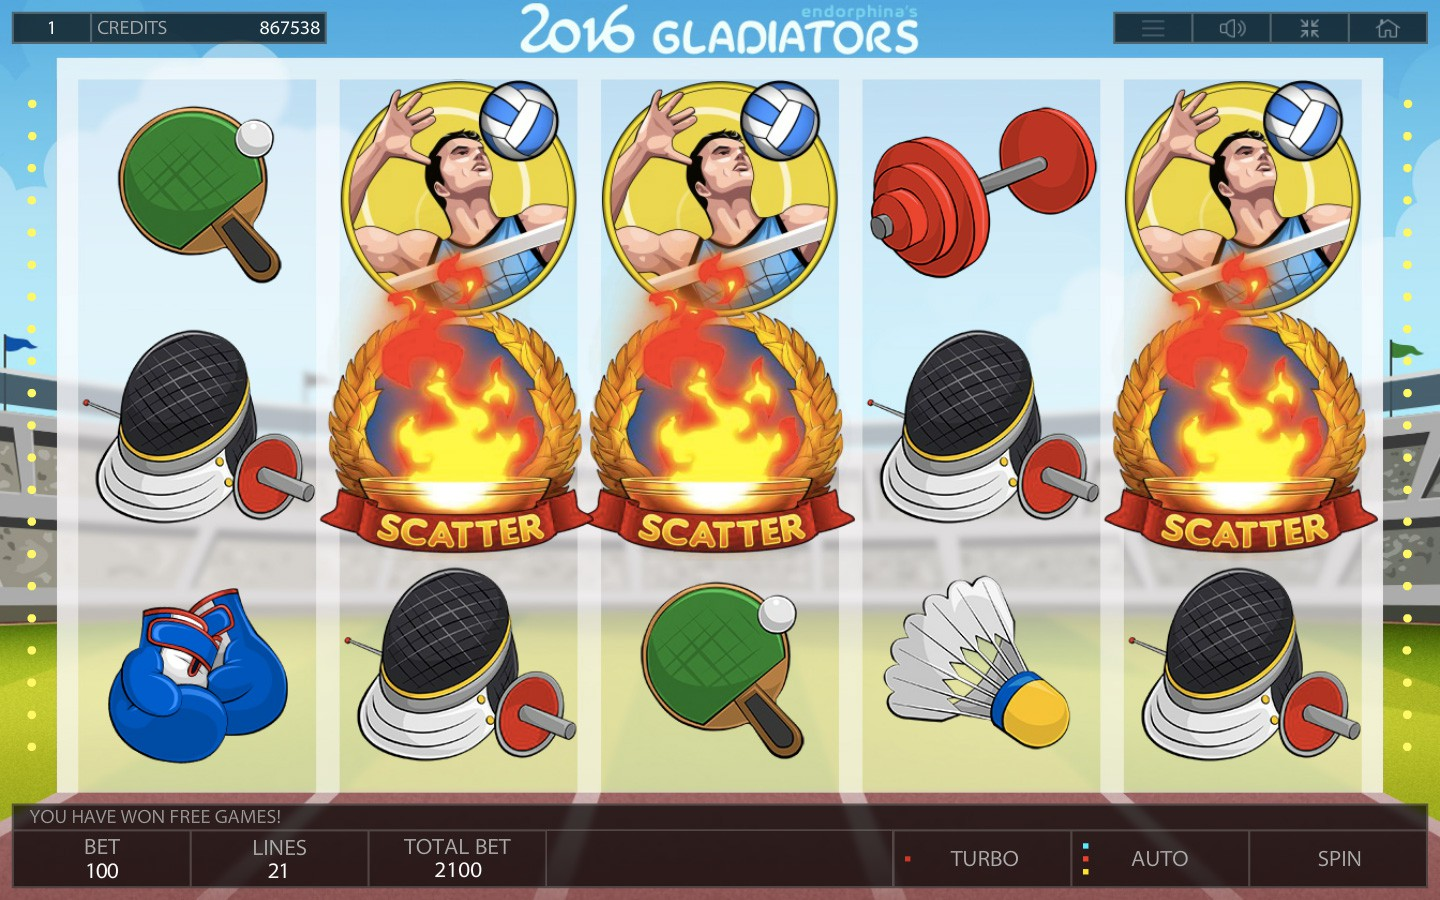 Premium Sport Slots Online | Play 2016 GLADIATORS slot now!